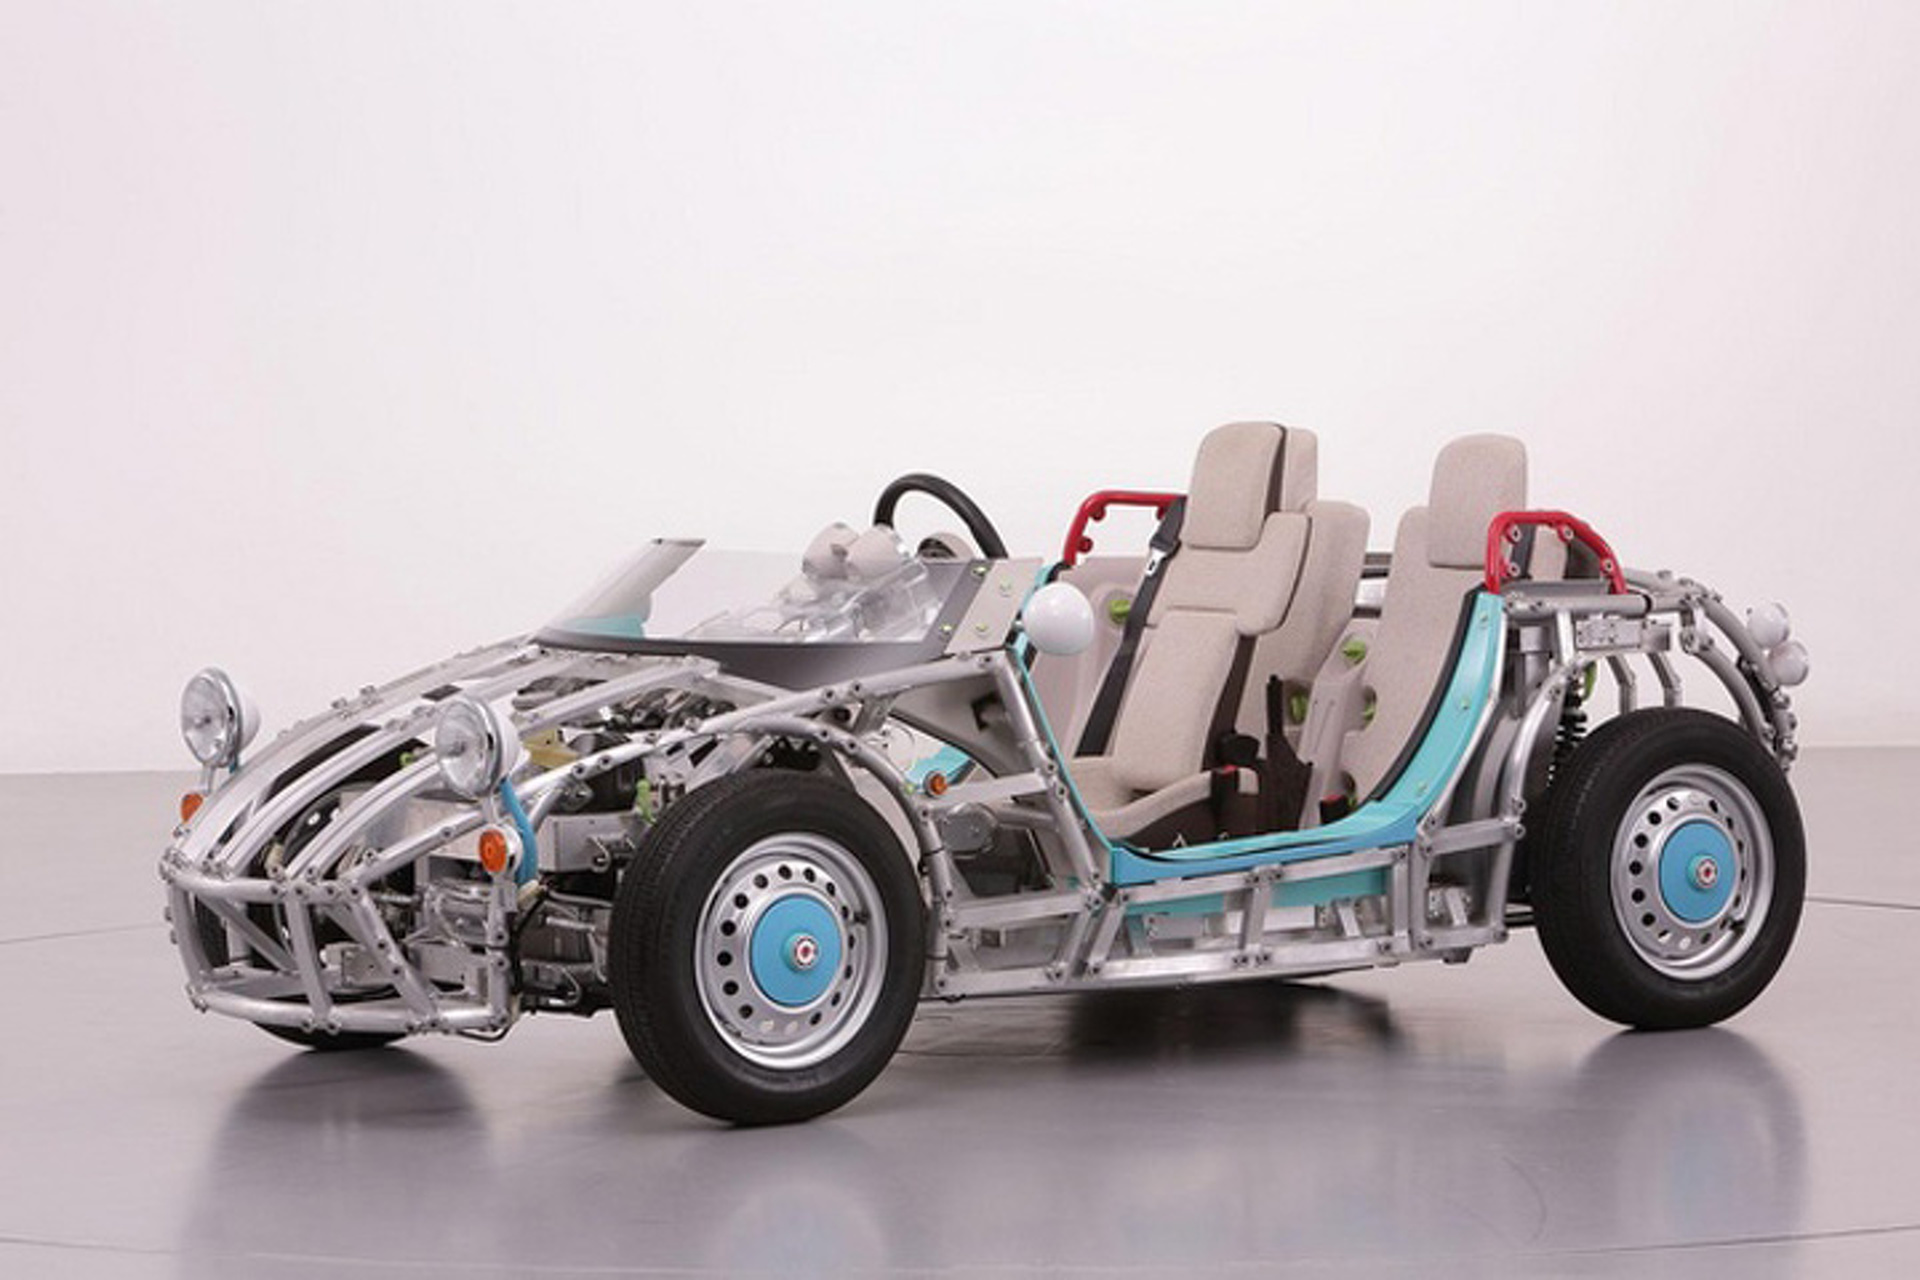 Toyota Gets Kids Into Cars with the Camatte57s Concept